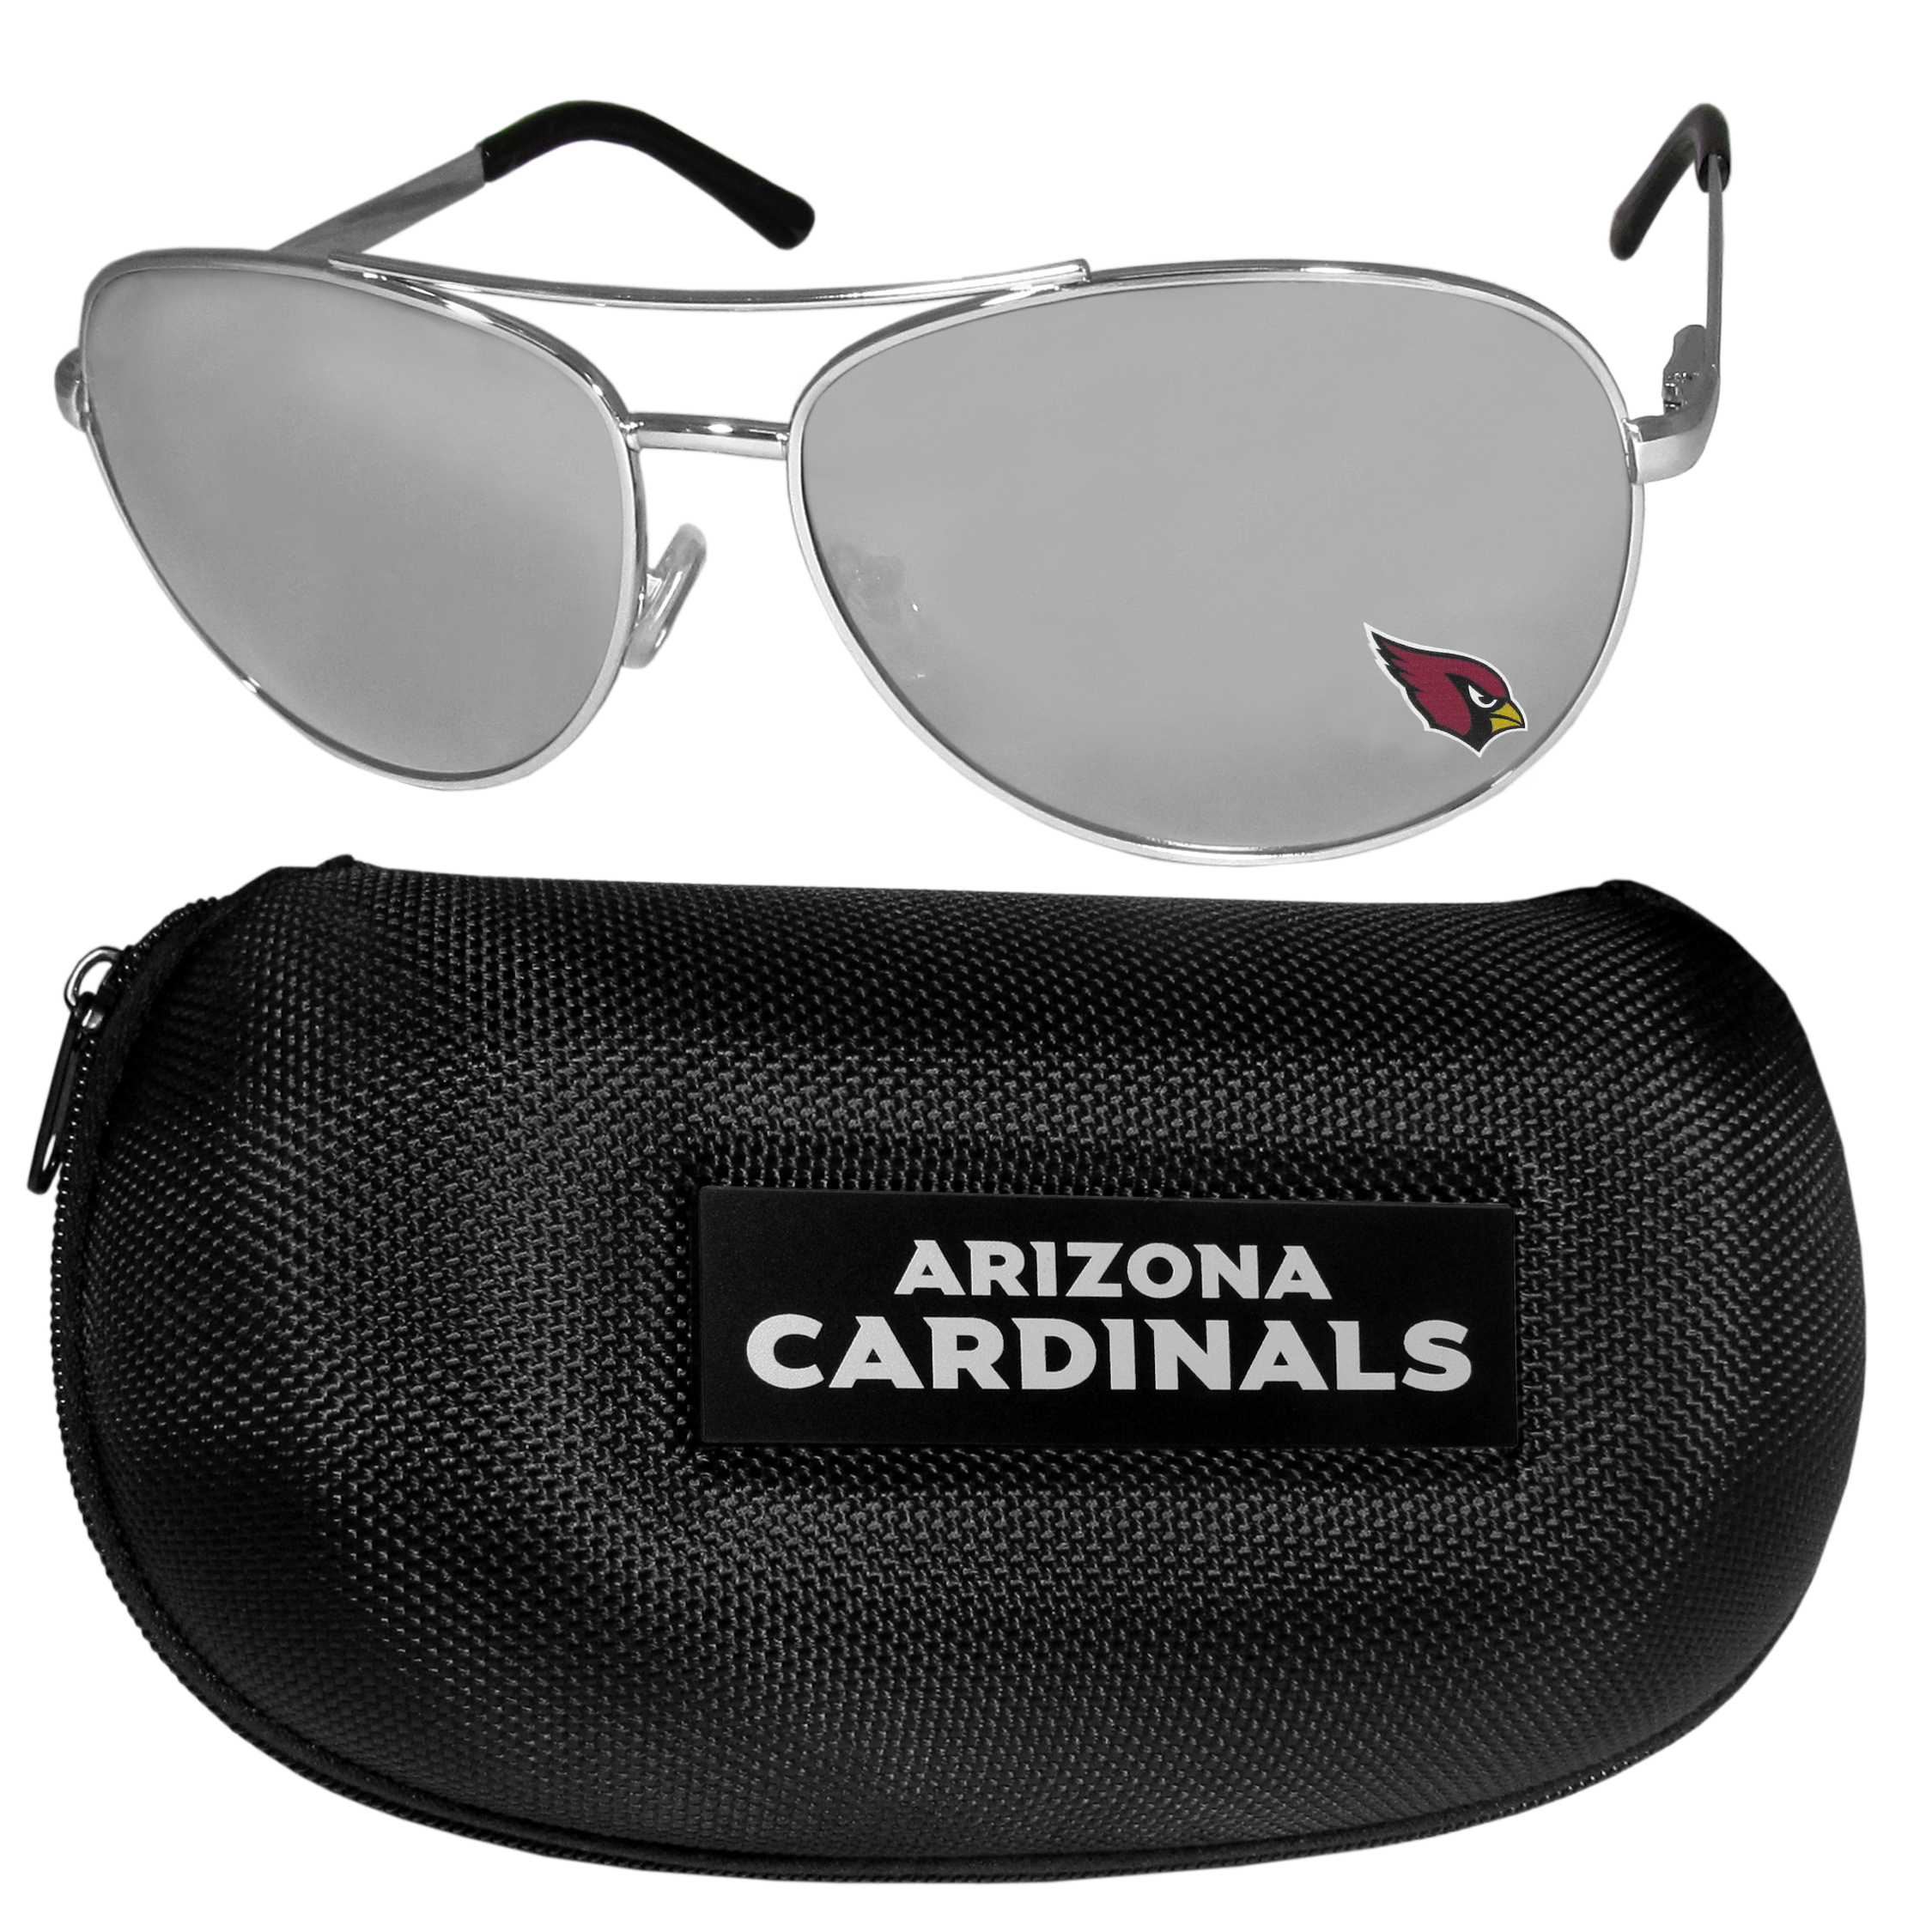 Arizona Cardinals Aviator Sunglasses and Zippered Carrying Case - Aviator sunglasses are truly an iconic retro fashion statement that never goes out-of-style. Our Arizona Cardinals  aviator sunglasses pair this classic look with your love of the game. The iridium coated lenses reduce glare while driving, boating, golfing and their 100% UVA/UVB rating provides you with the maximum UV protection for all your outdoor activities. A millennial favorite, these affordable designer frames are the perfect eyewear accessory for a sports fan that is looking for high-quality at an affordable price. The durable, flex hinged frames are tough enough for hiking and camping or if you prefer sun bathing by the pool or on the beach these shades will really stand the test of time. The sunglasses come with a hard shell zippered case which has a large team logo on the lid that will make even the most die-hard fan proud!